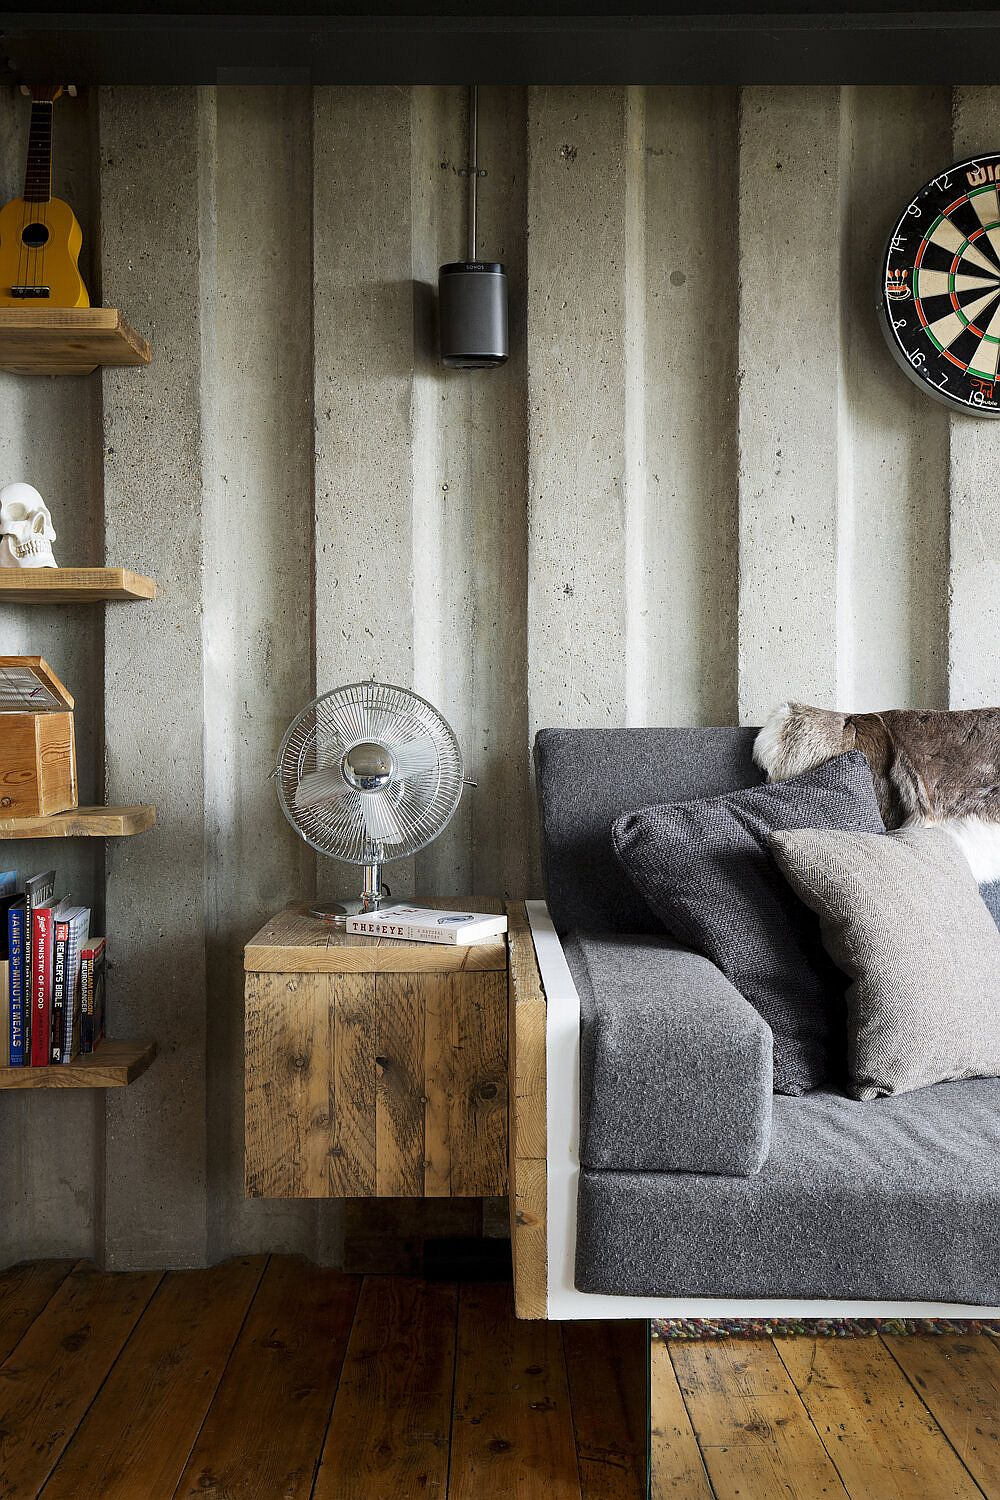 Custom wooden side table next to the sofa saves space